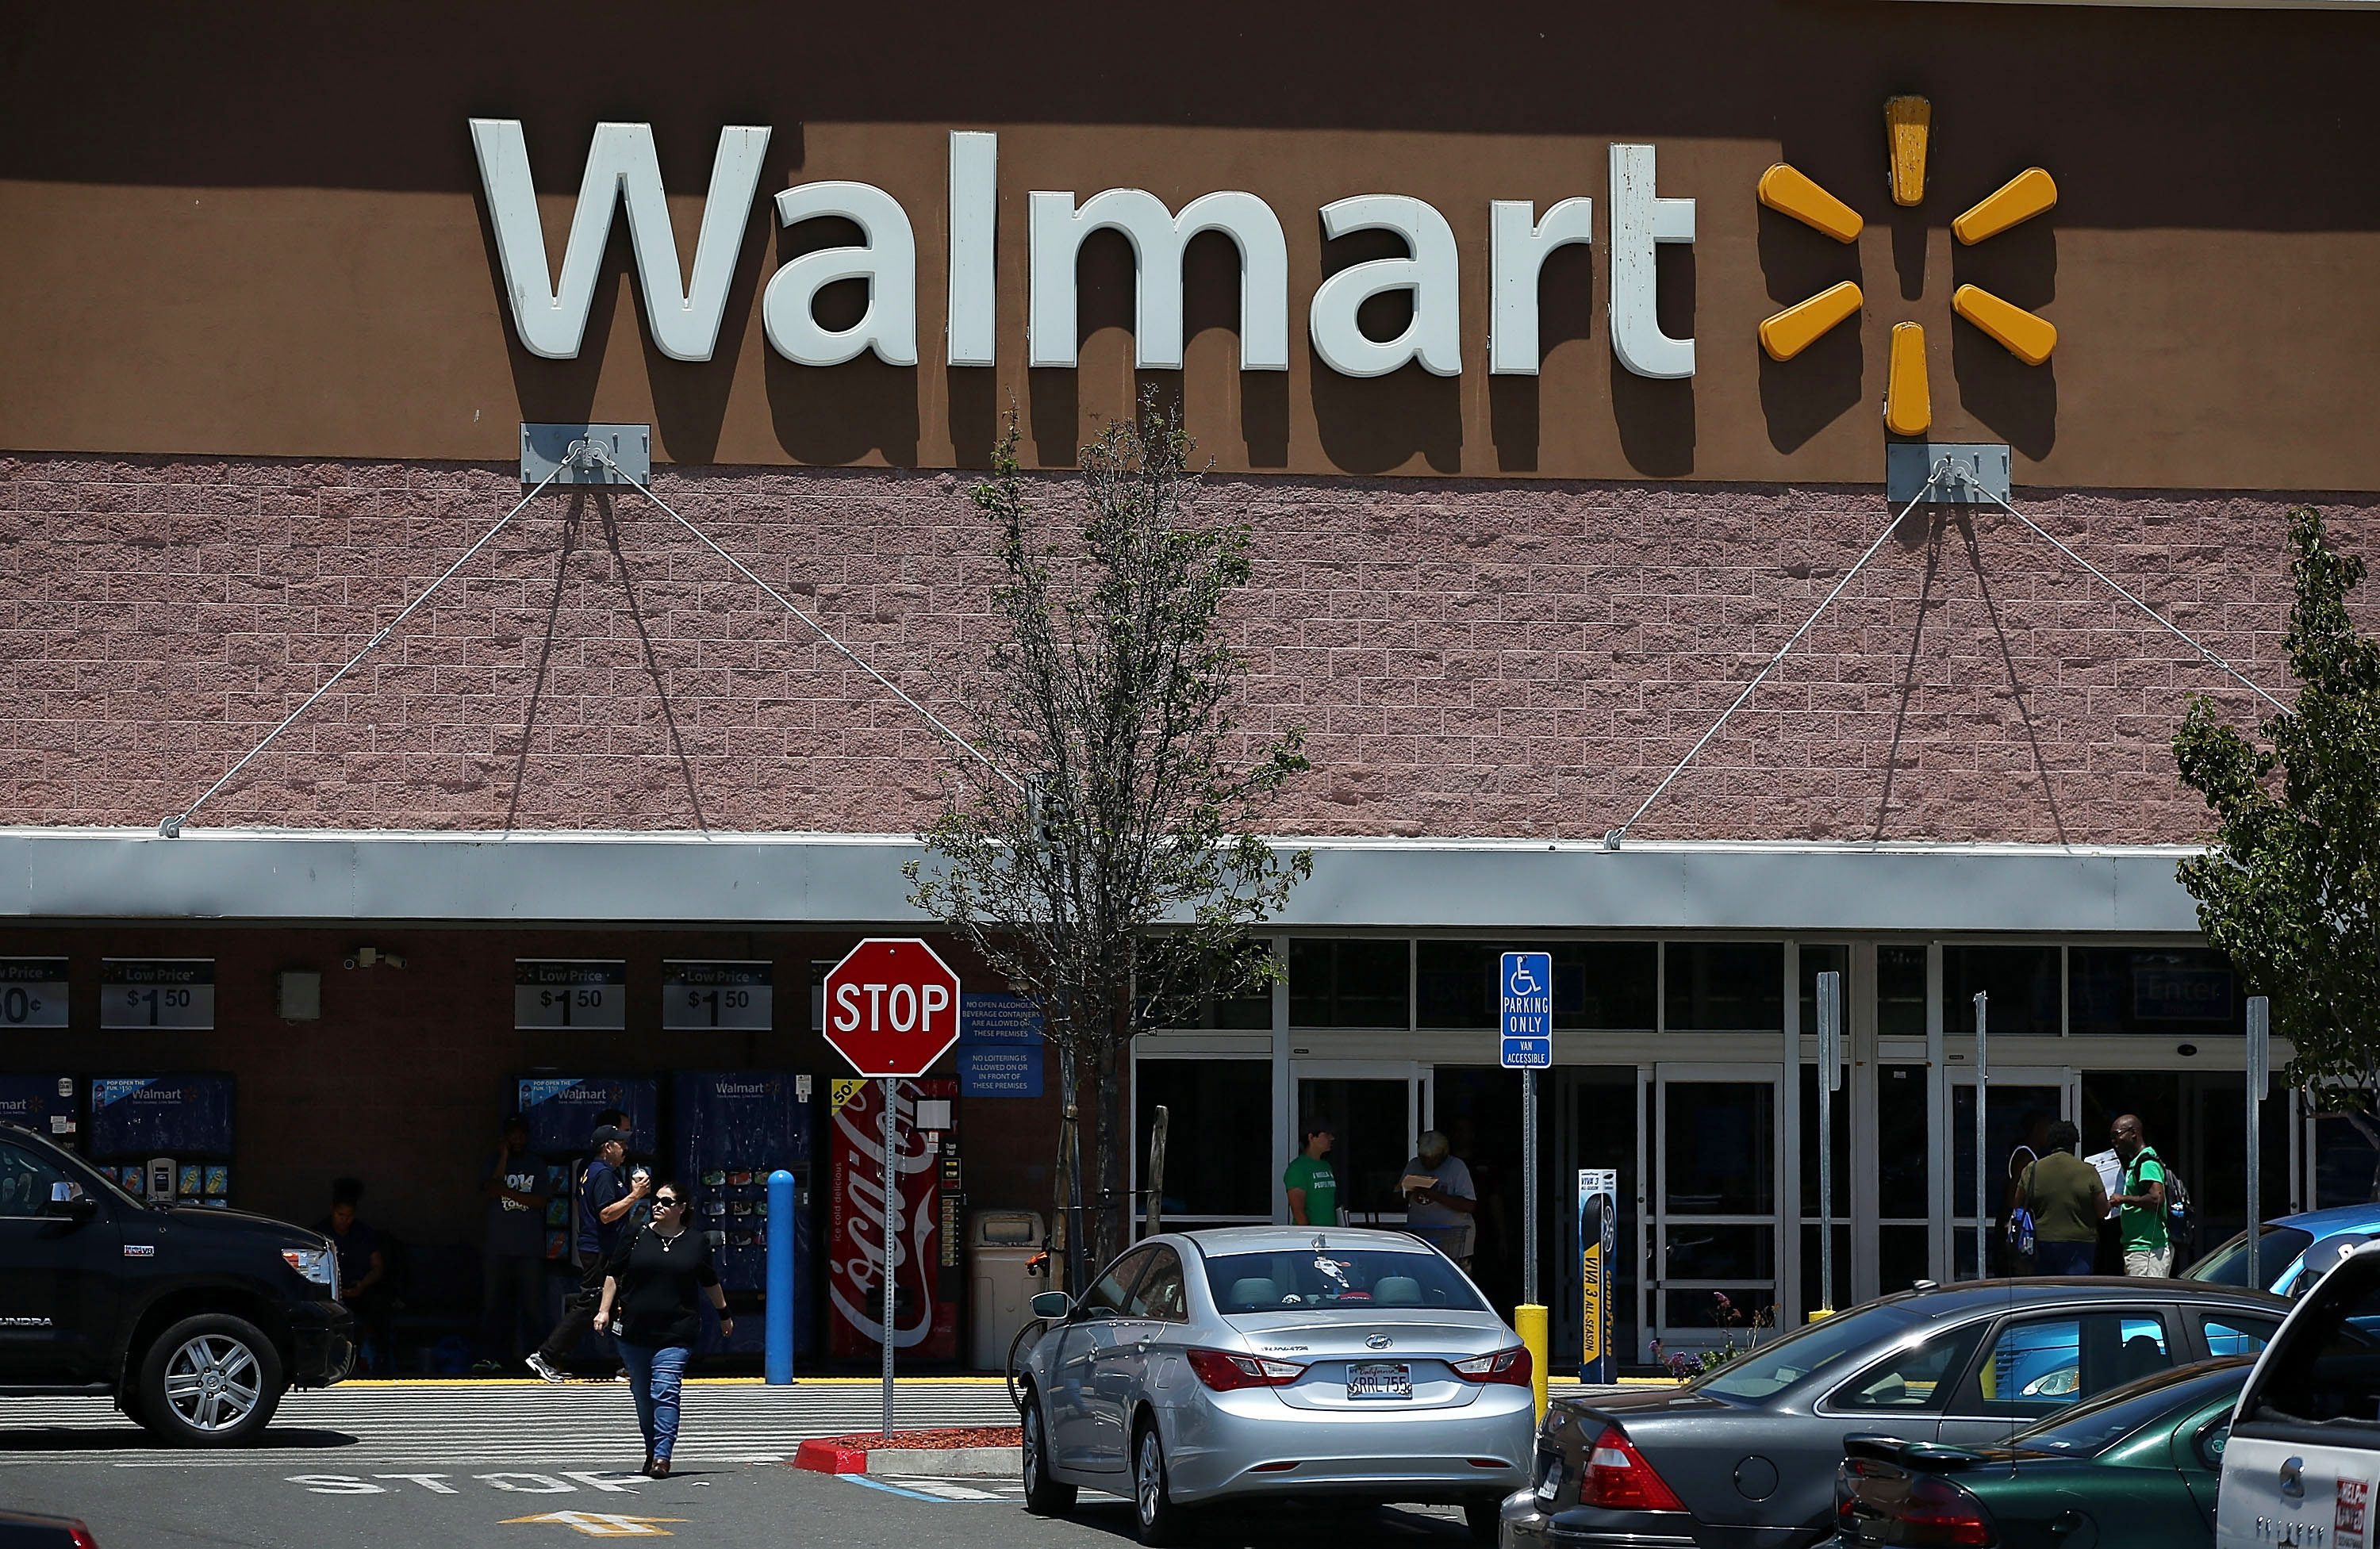 Walmart launches rival sale: Walmart Rival Sale